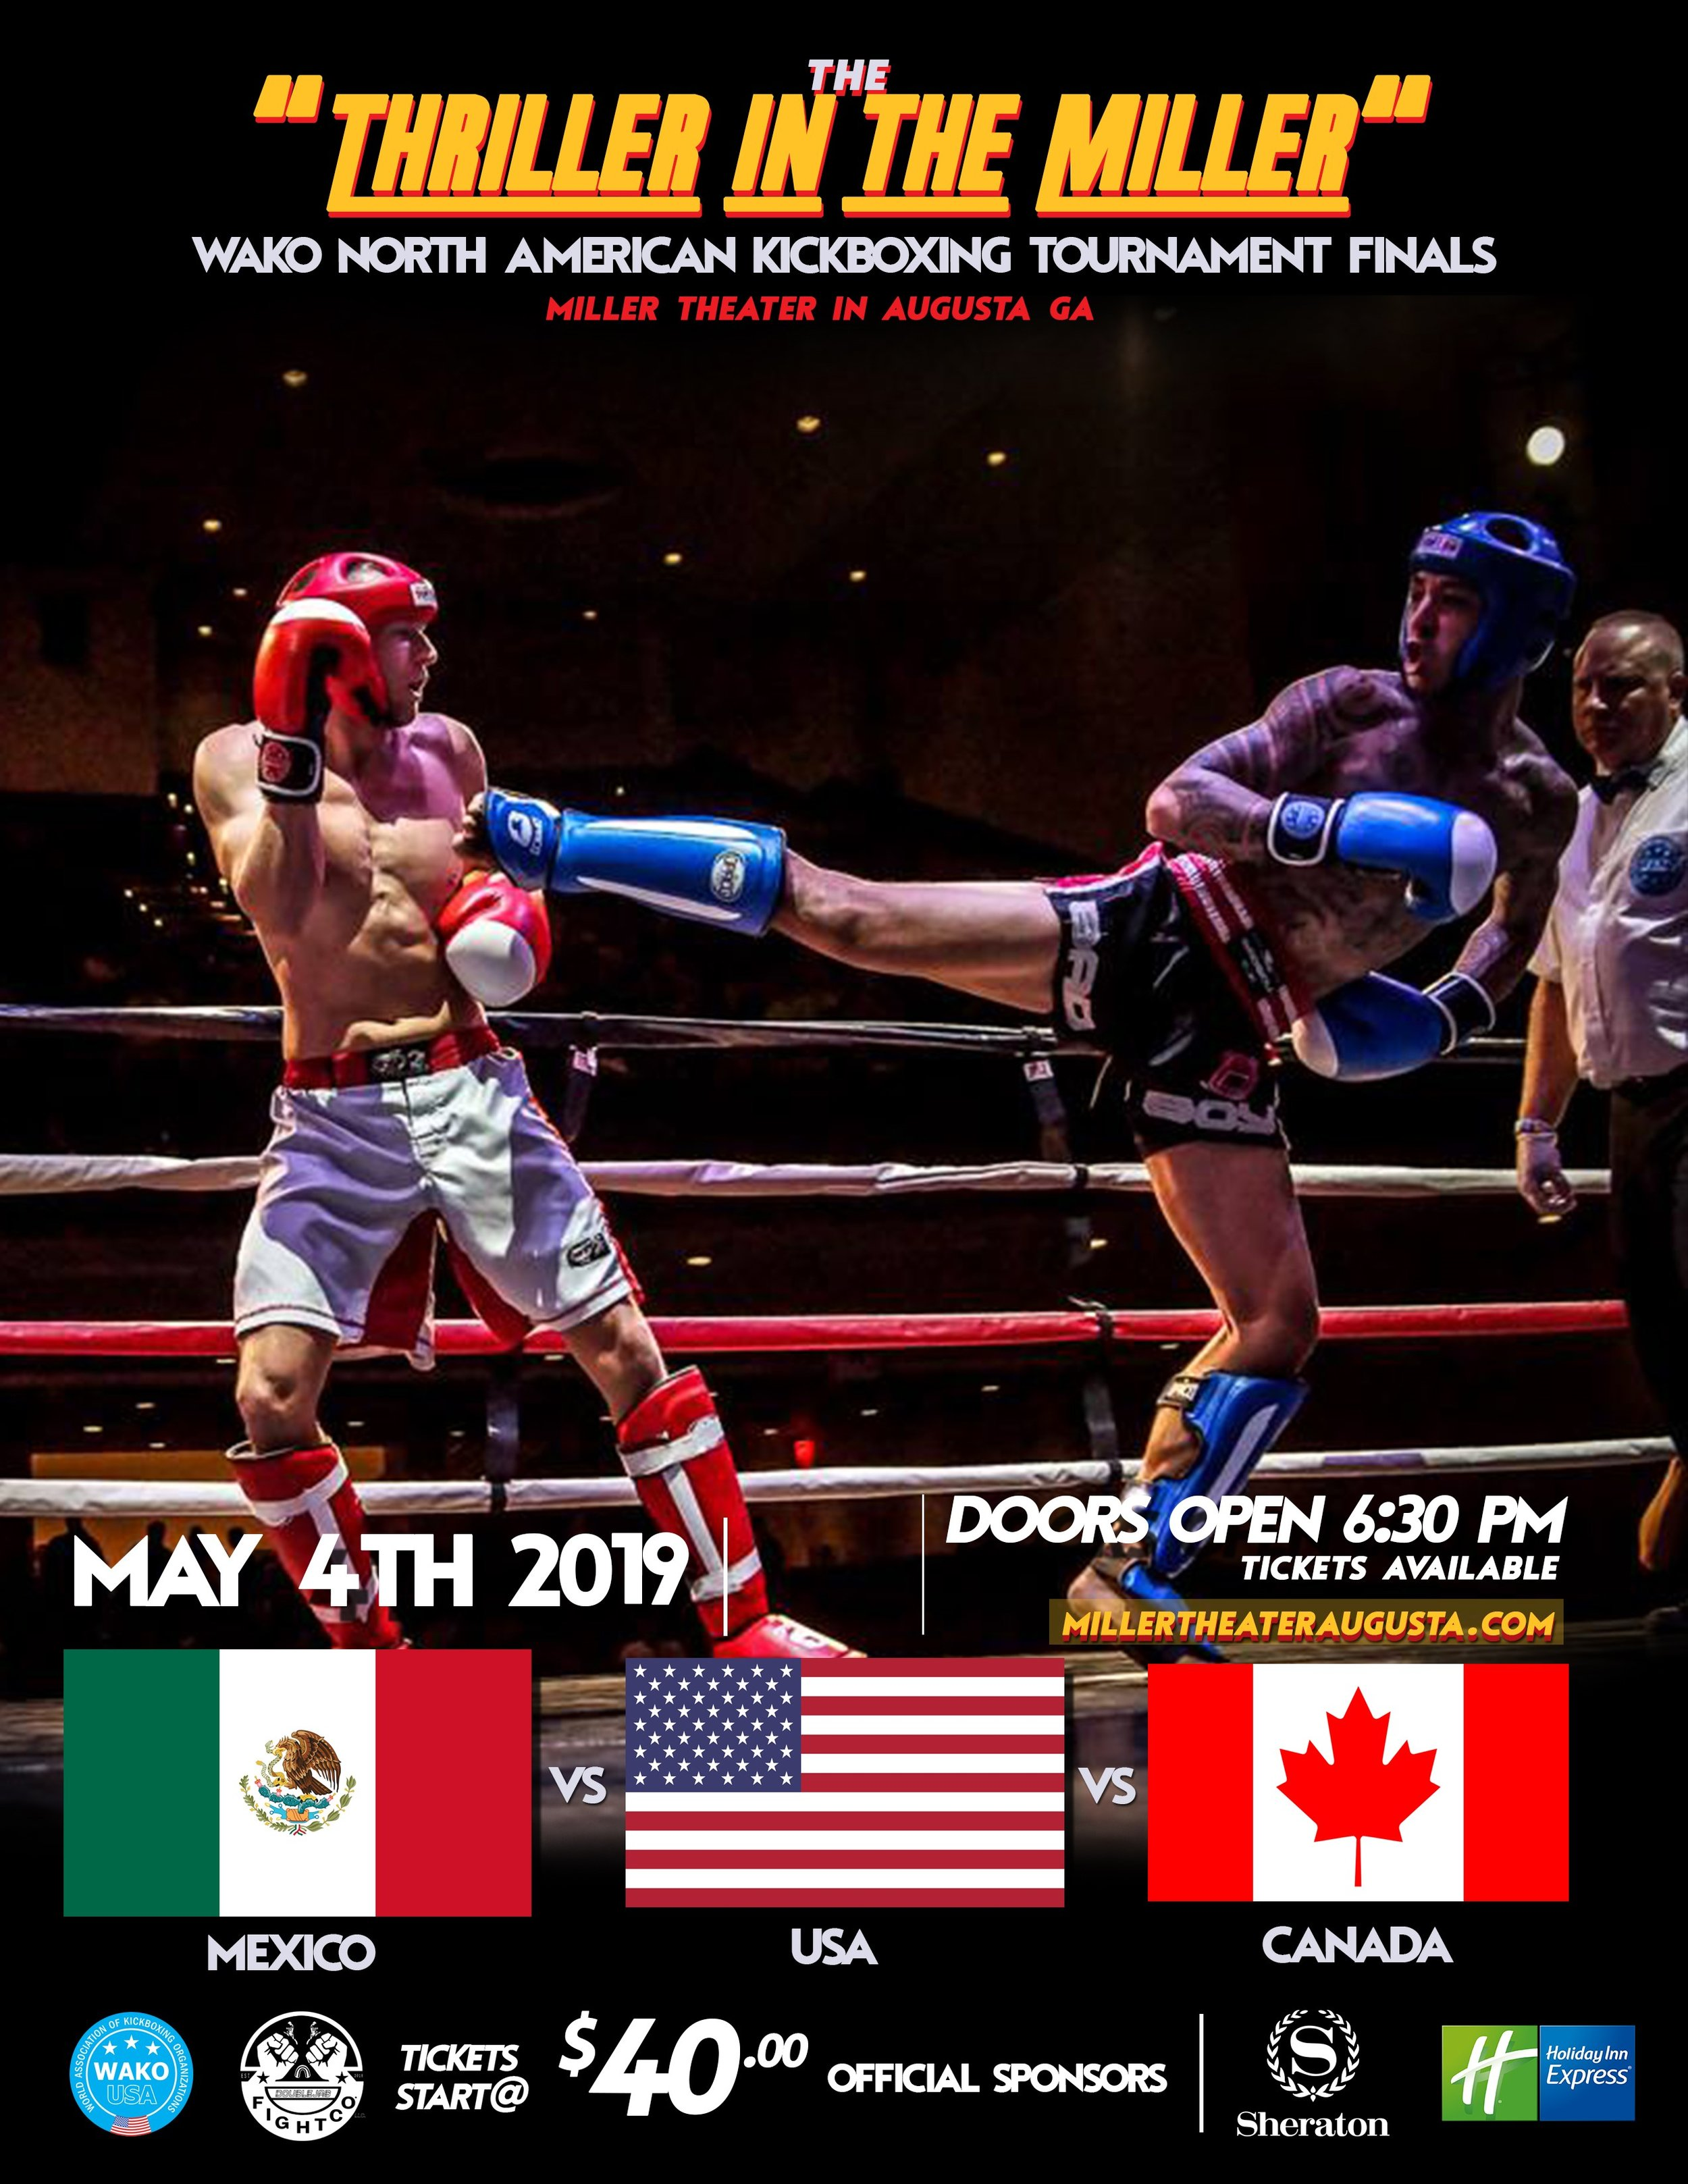 WAKO North American Kickboxing Tournament will be held here in Augusta, GA on May 4th at the historic Miller Theater! The national teams of Canada, Mexico, and the United States will be competing for kickboxing supremacy! get tickets now at www.MillerTheaterAugusta.com -